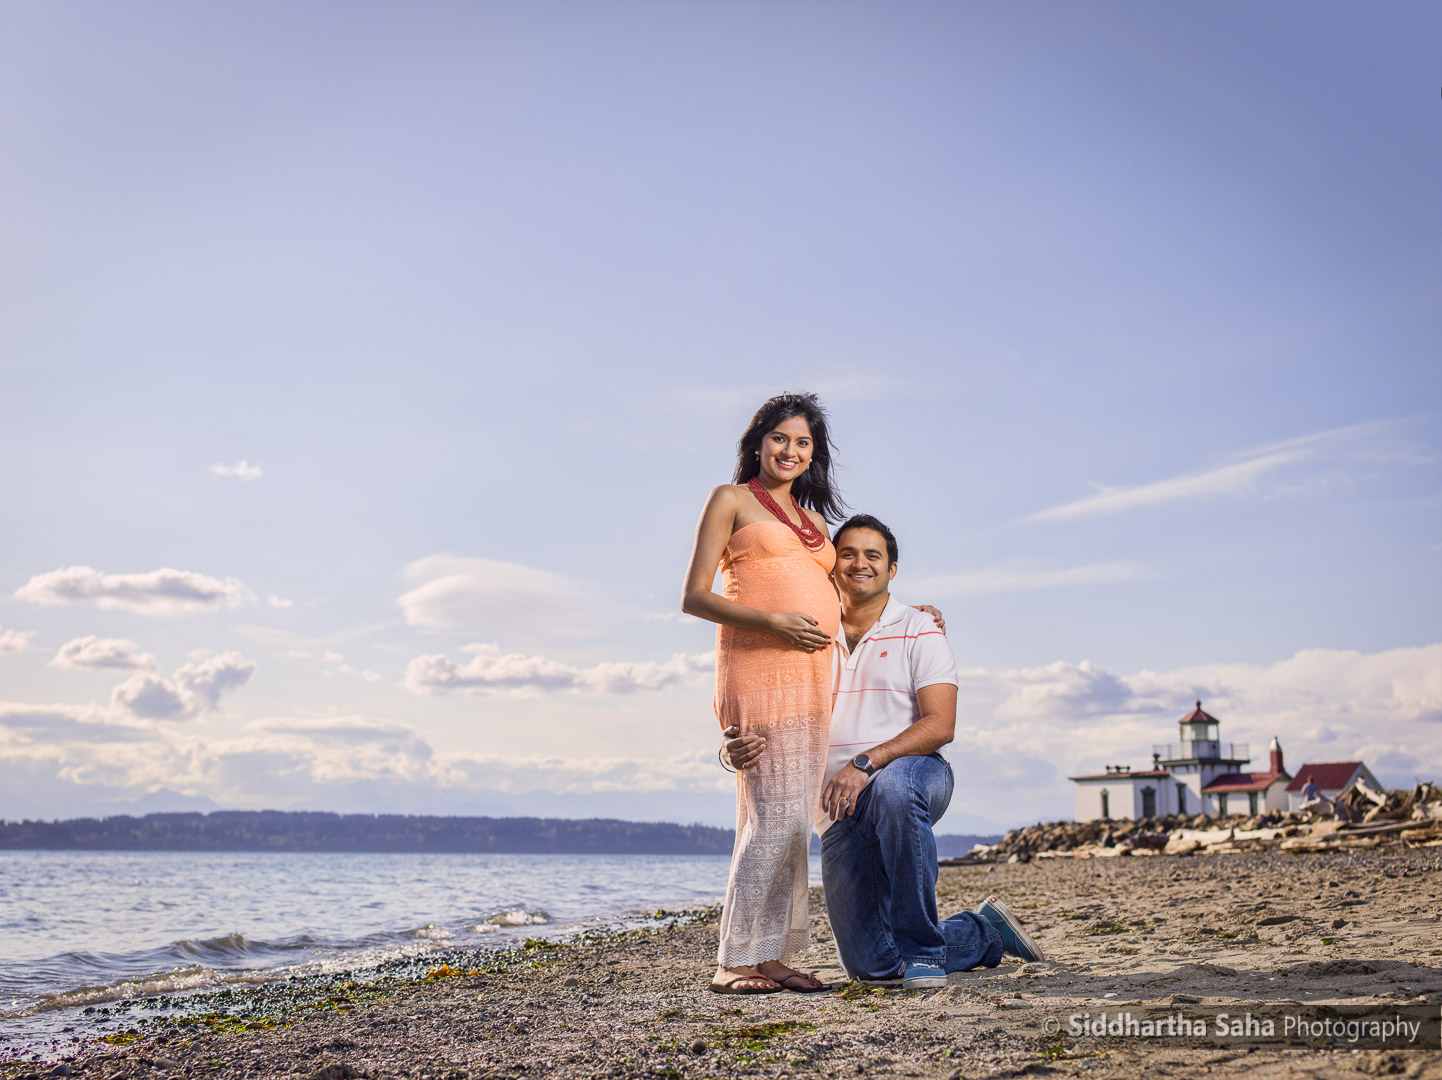 2015-04-04 - Vini Maternity Shoot - CREDO - CF001784-01